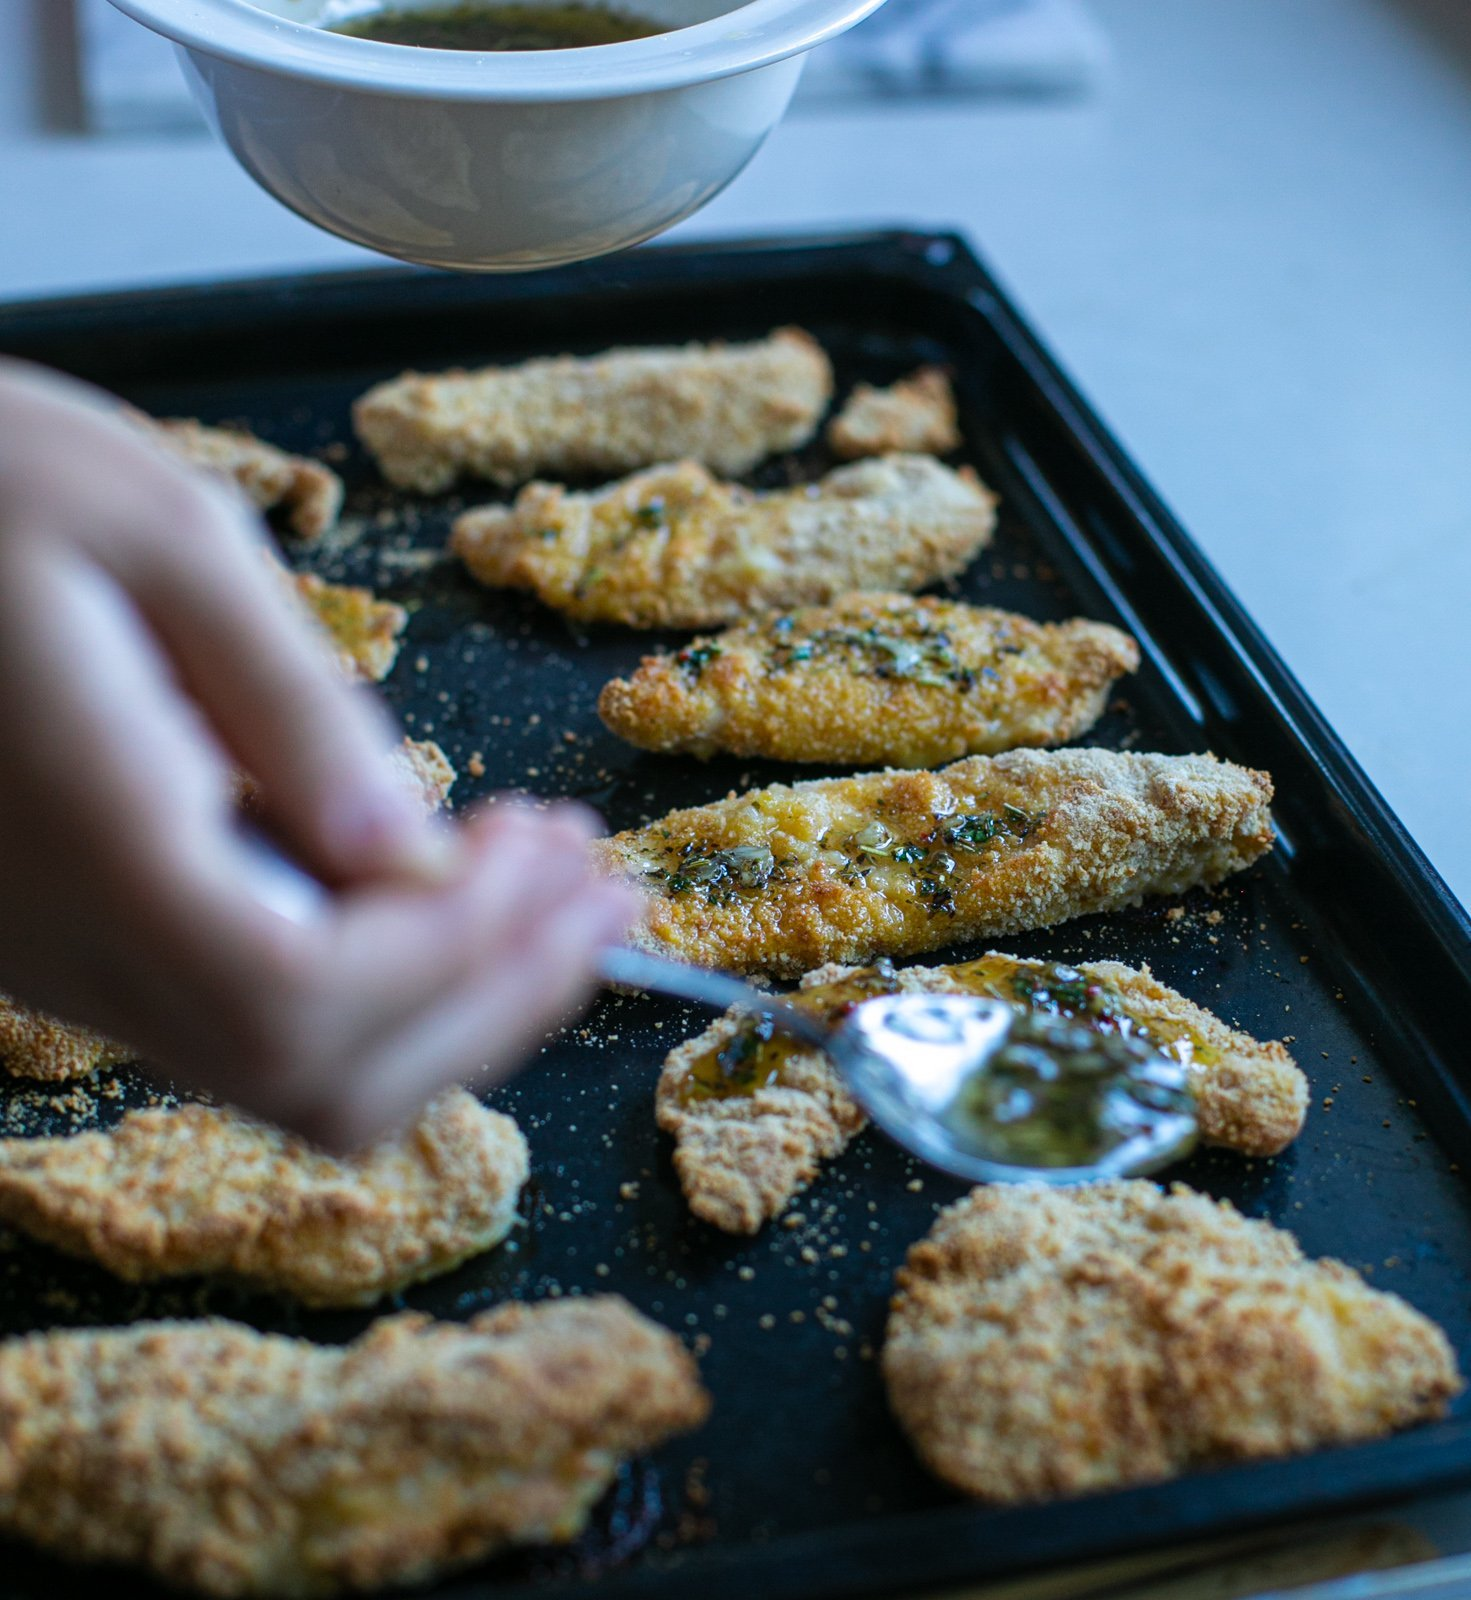 Garlic butter sauce being added to crispy chicken dippers on a baking tray